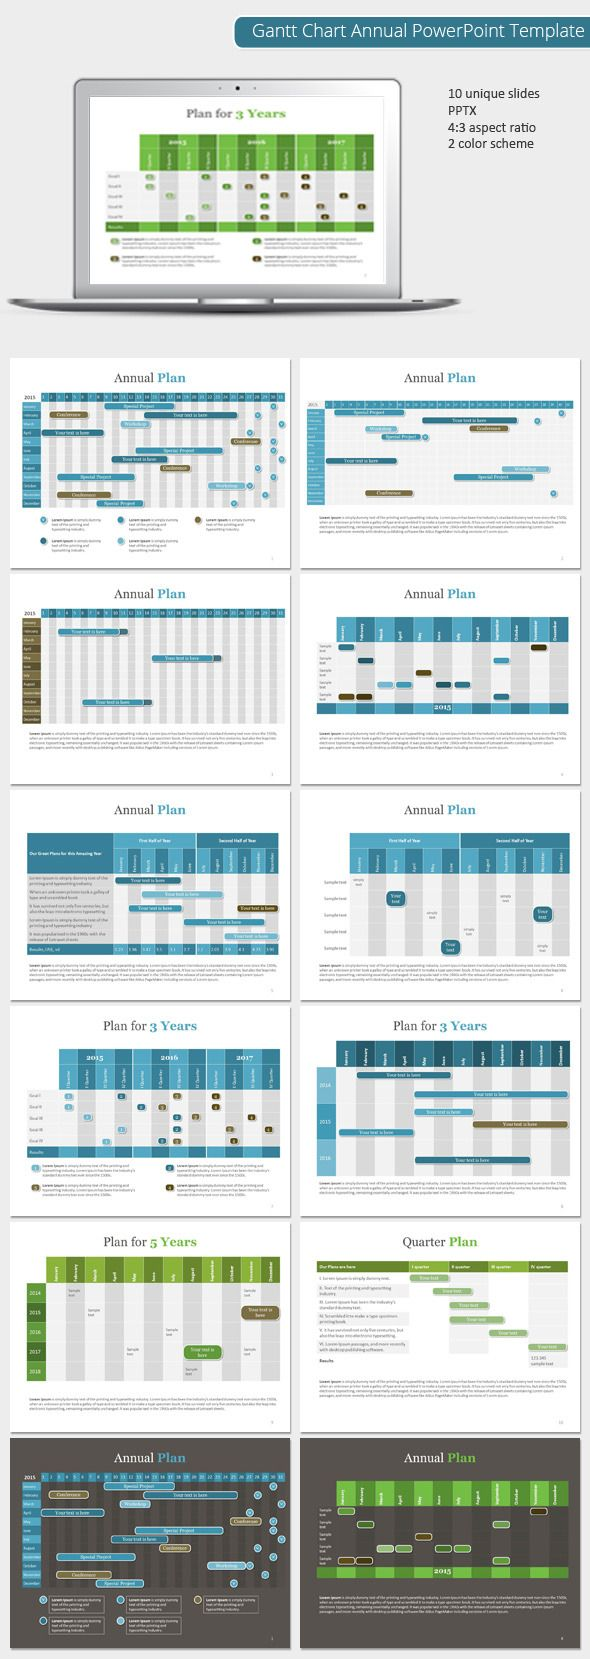 16 best free timeline templates images on pinterest templates gantt chart annual powerpoint template powerpoint templates toneelgroepblik Gallery